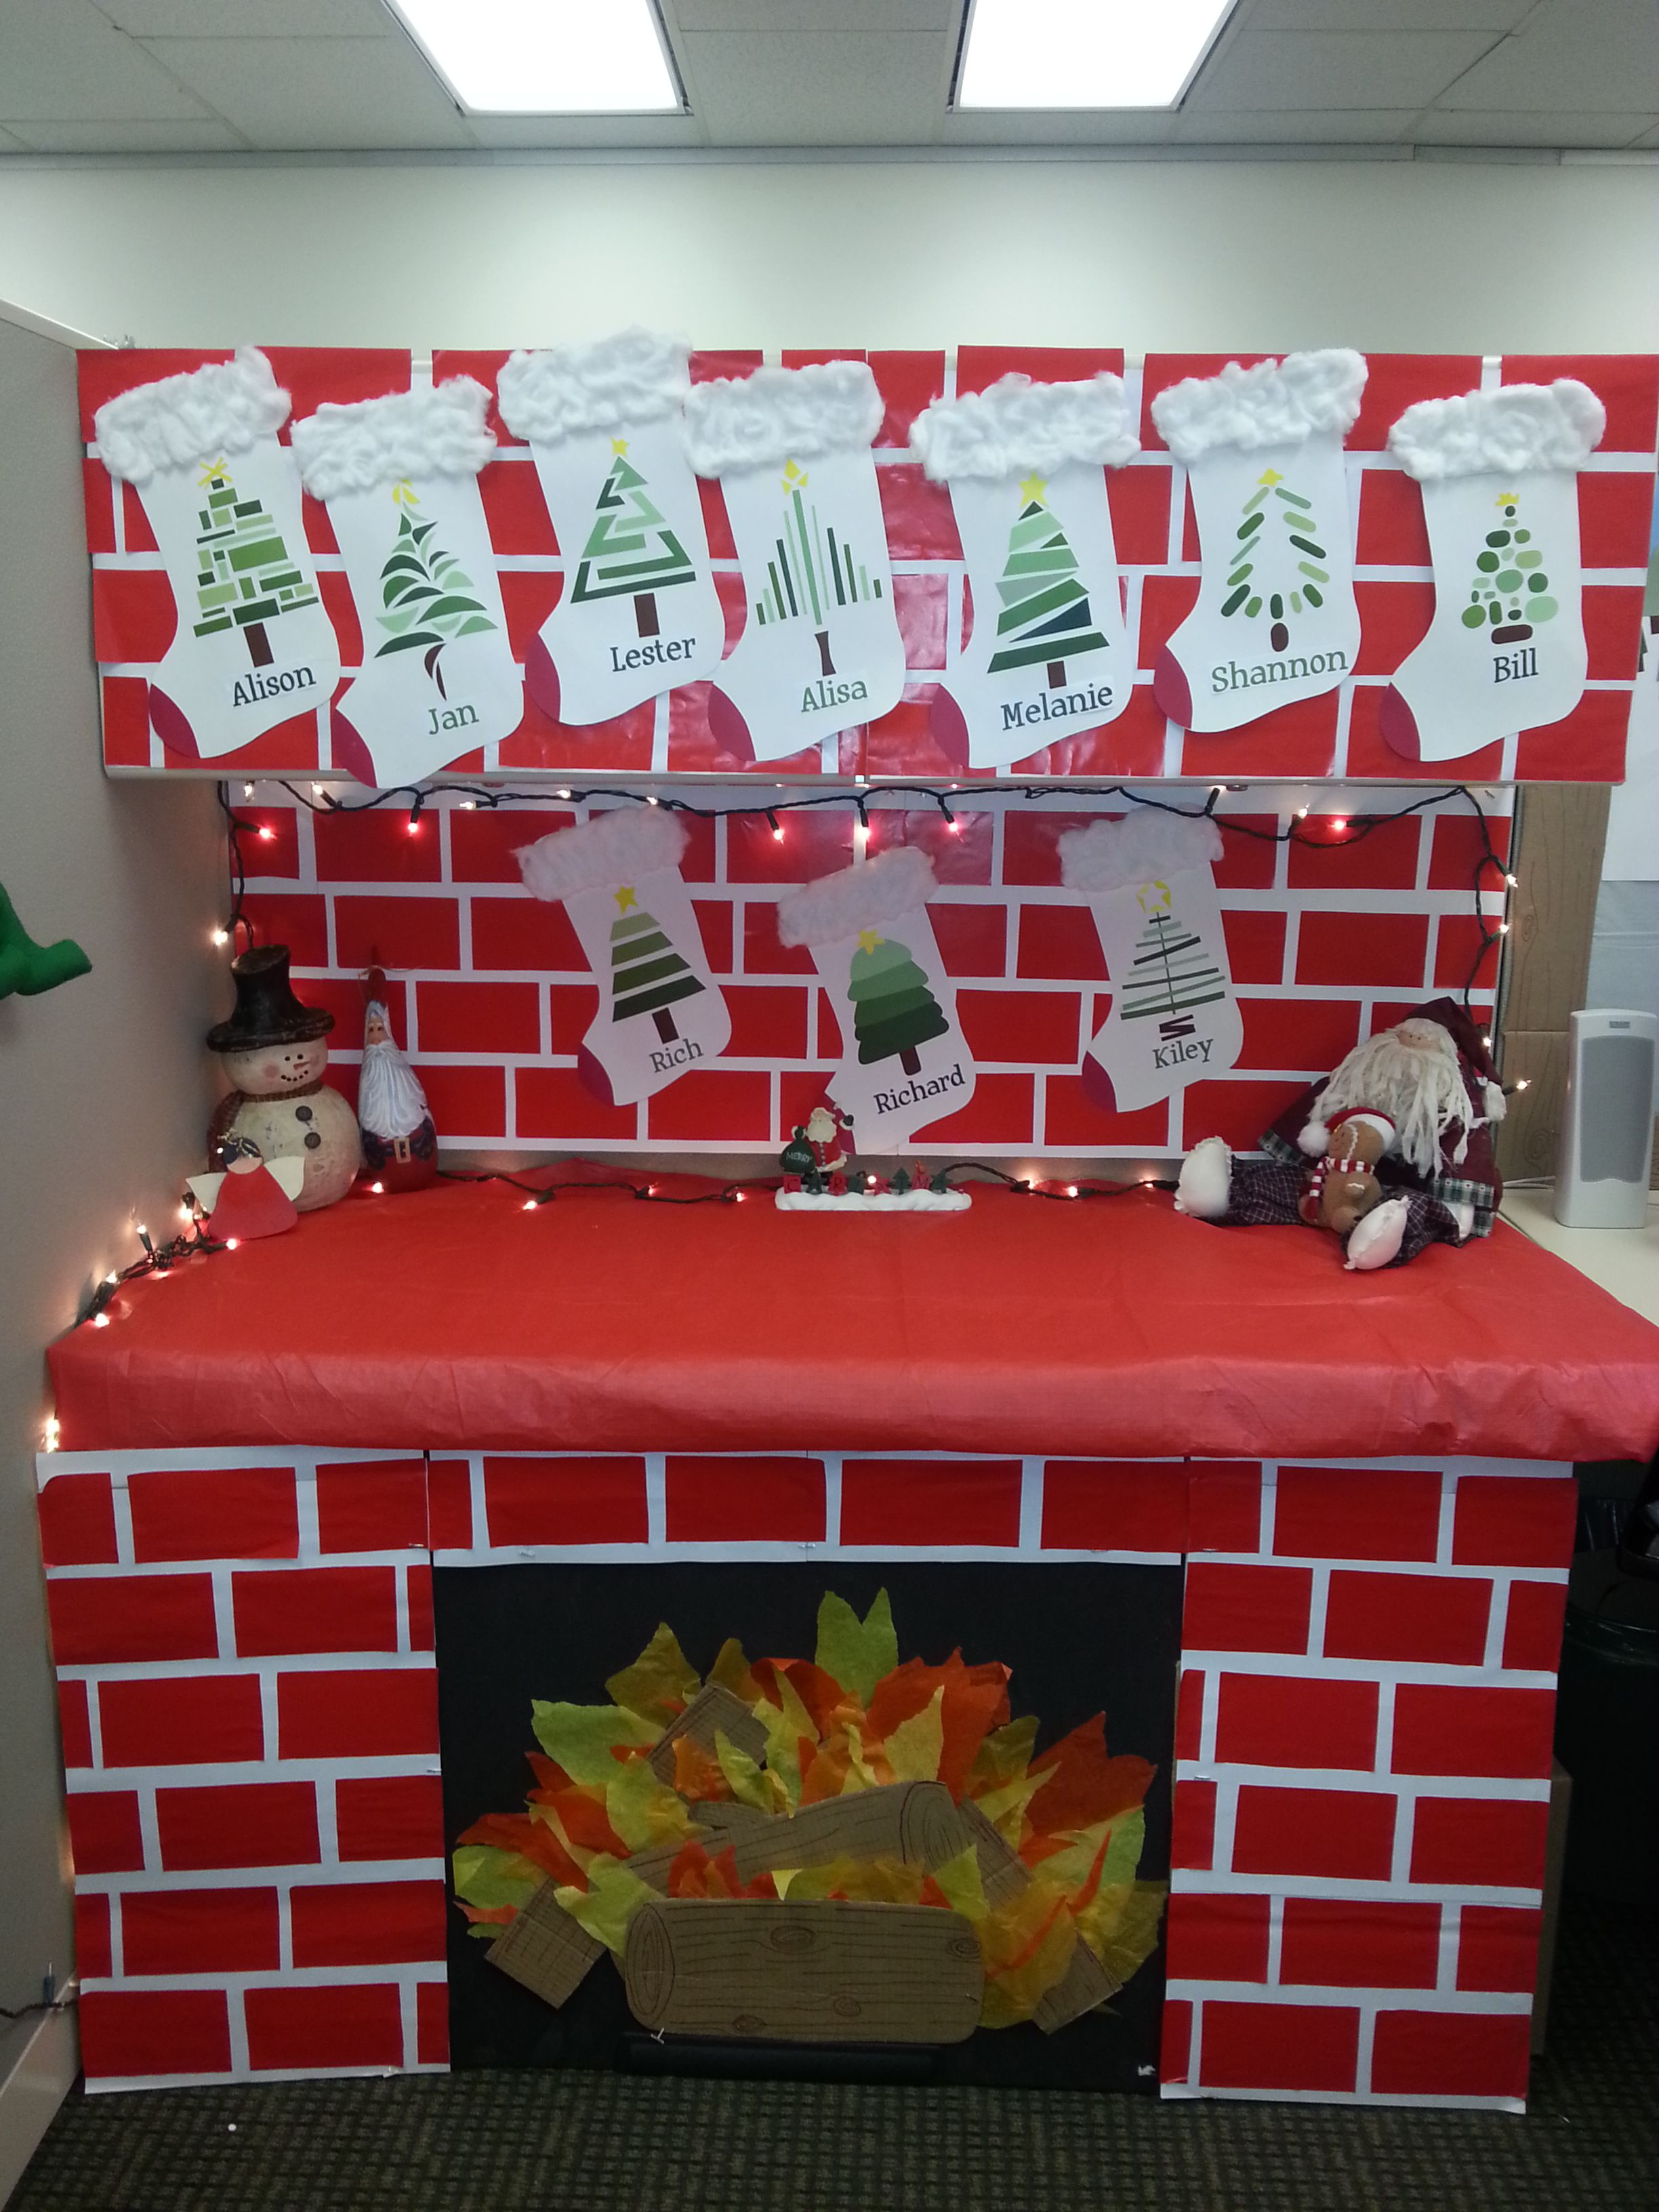 17 best images about christmas cube on Pinterest | Tissue paper ...